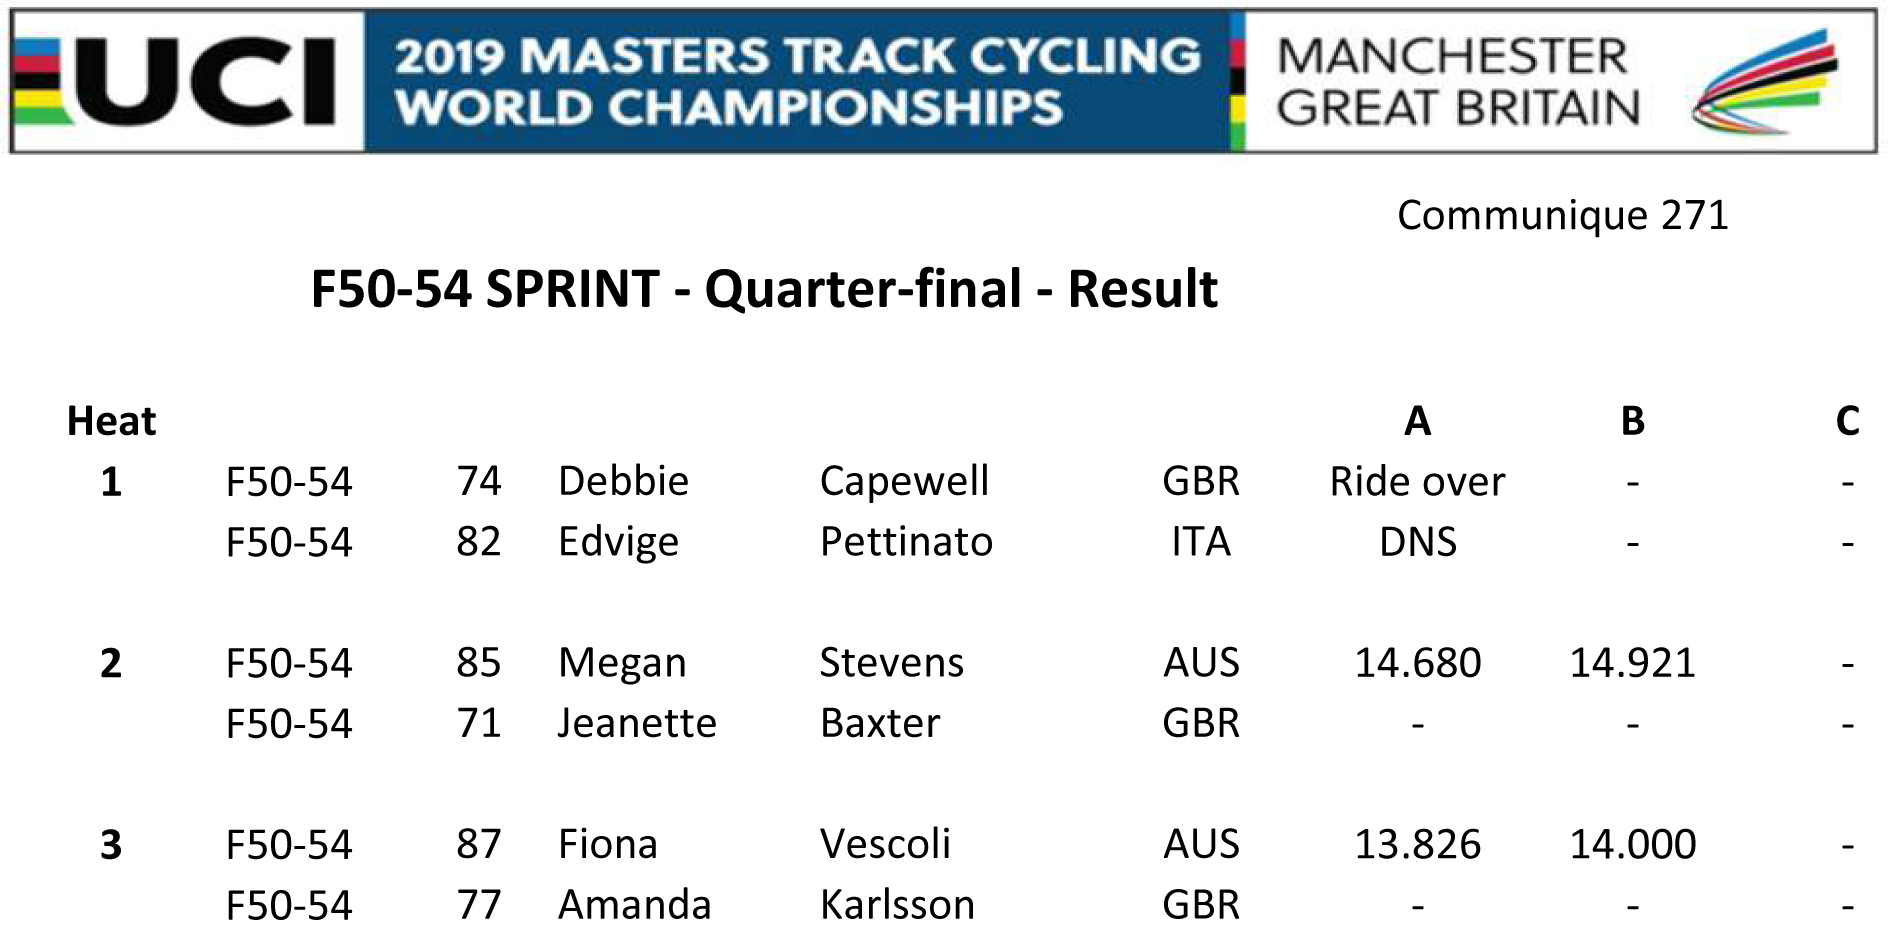 F5054 SPRINT QUARTER FINAL RESULT